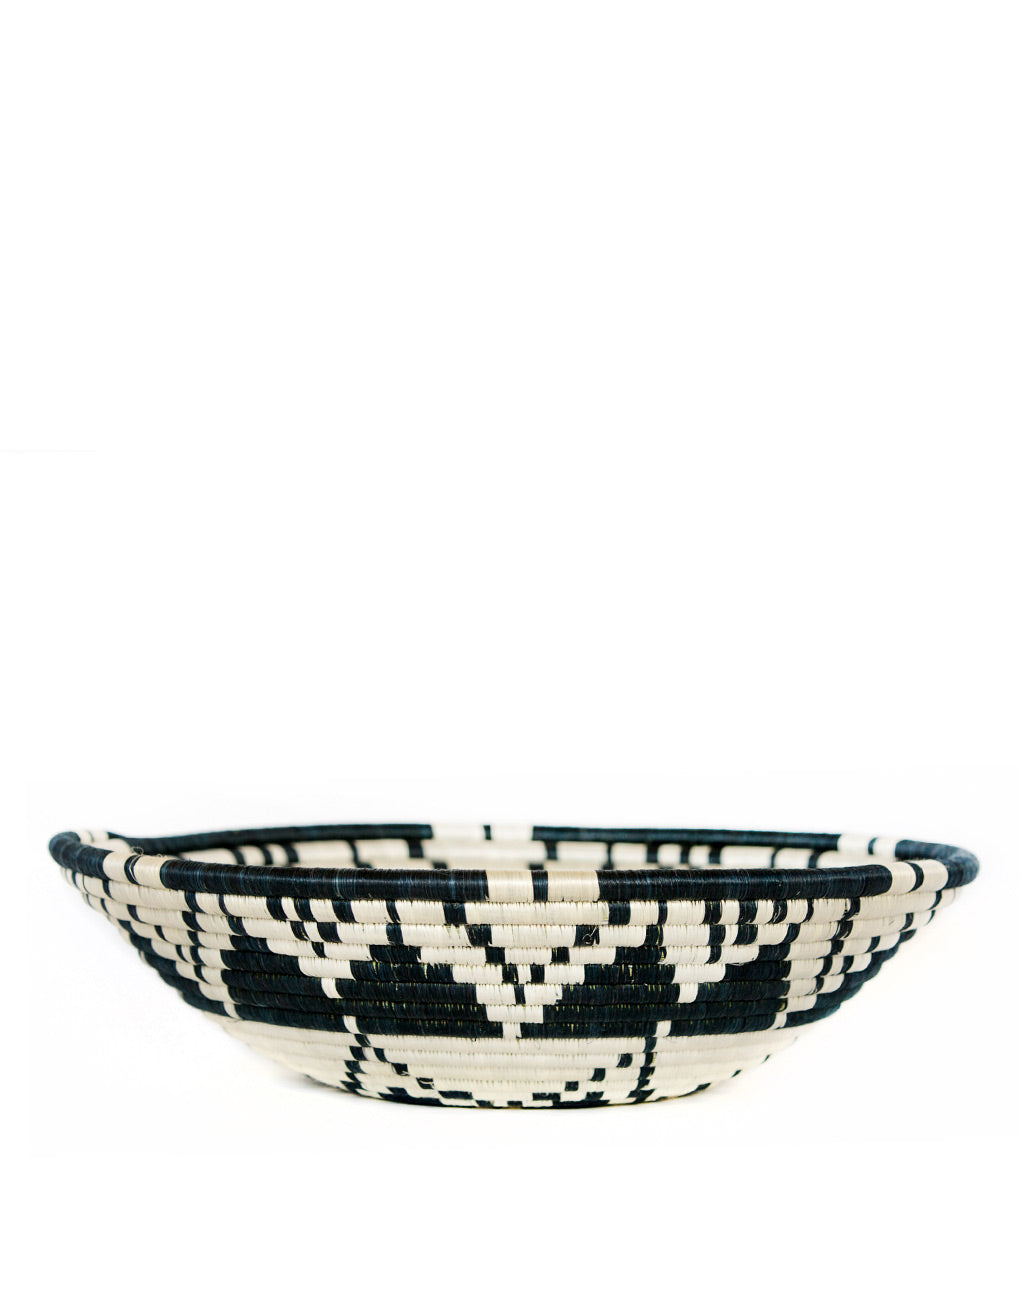 Fair Trade, Hand-woven Large Sun Bowl, Sisal and Sweet Grass, Black